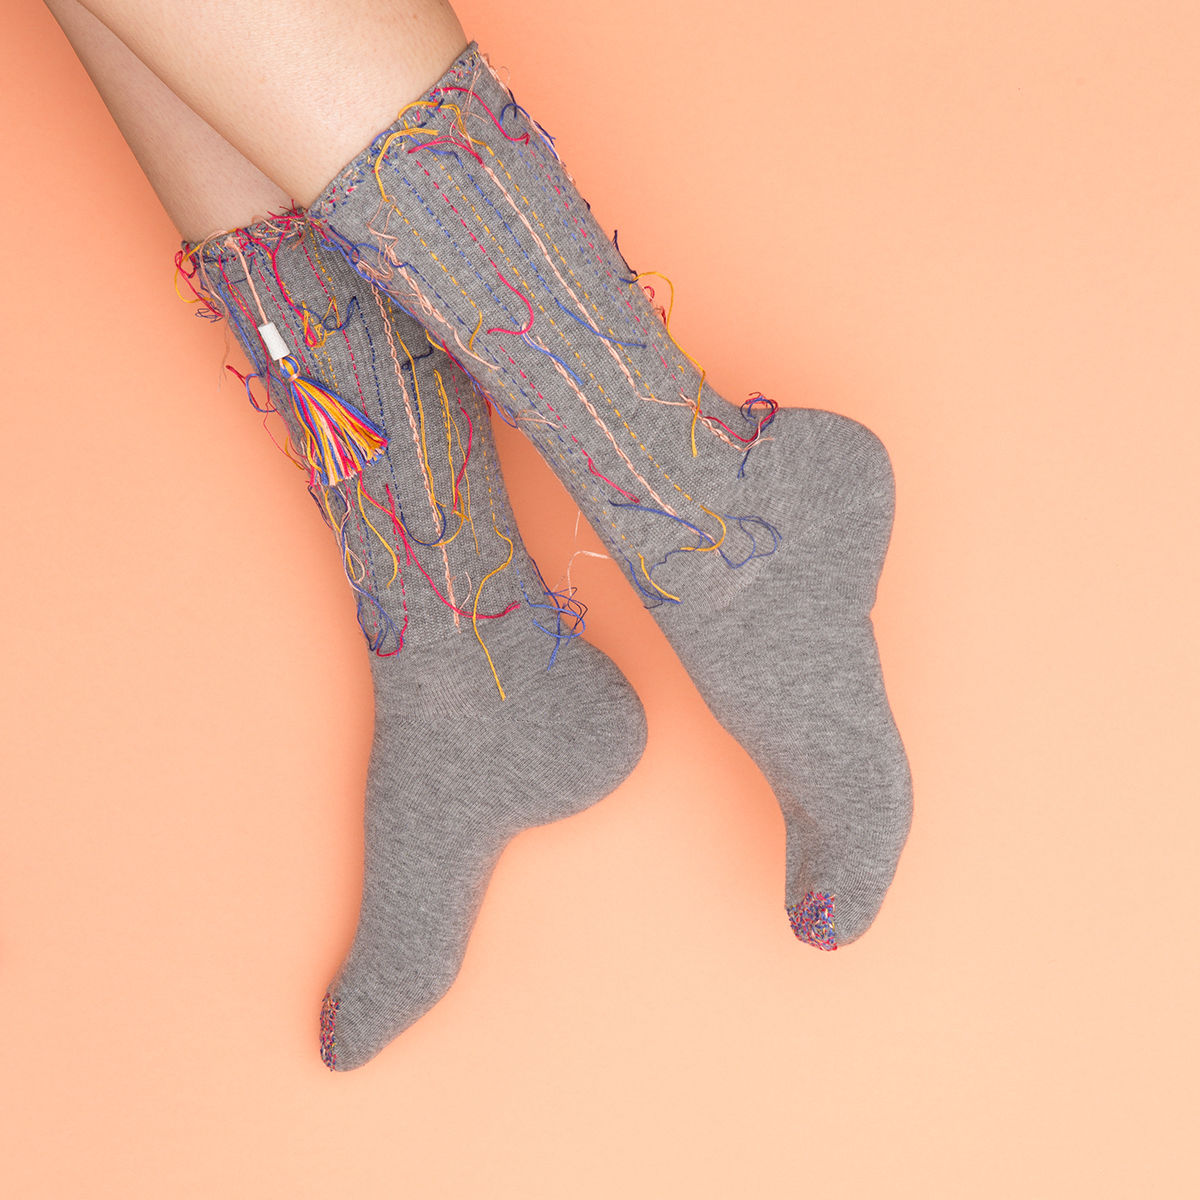 FrankieMag must-have socks threaded art http://weirdatheart.com/absolutely-must-have-socks/